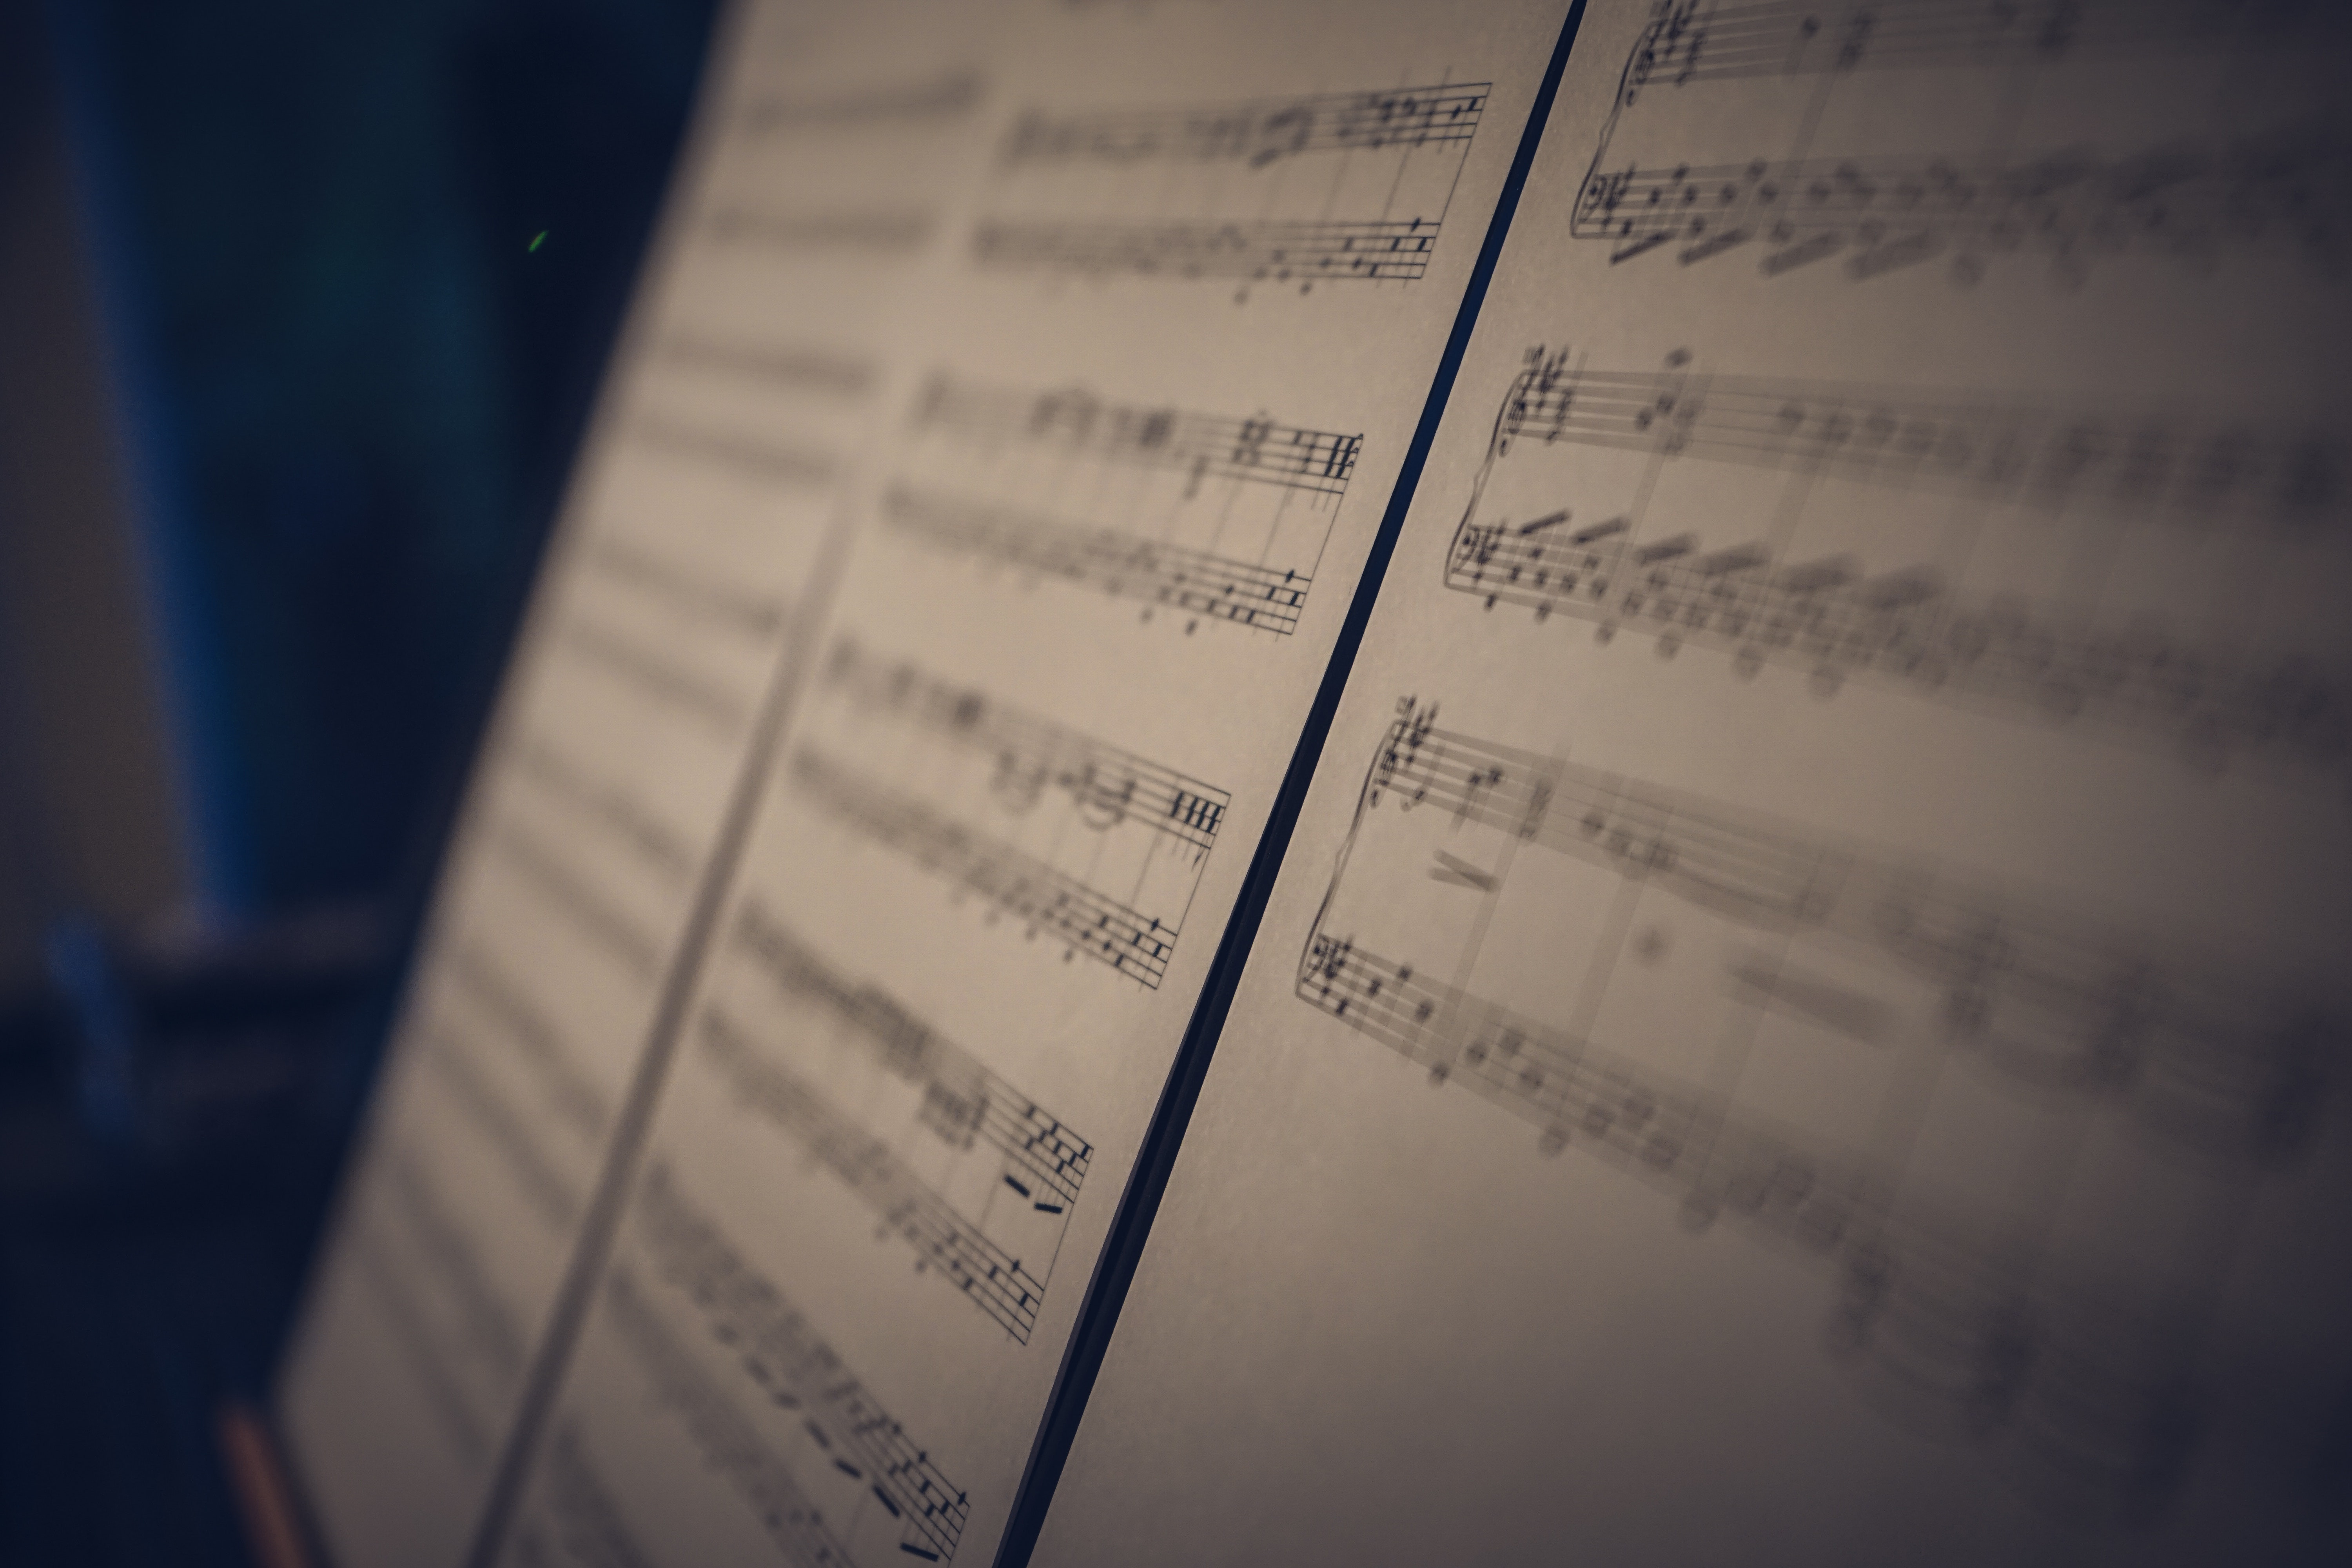 Online individual music theory lessons